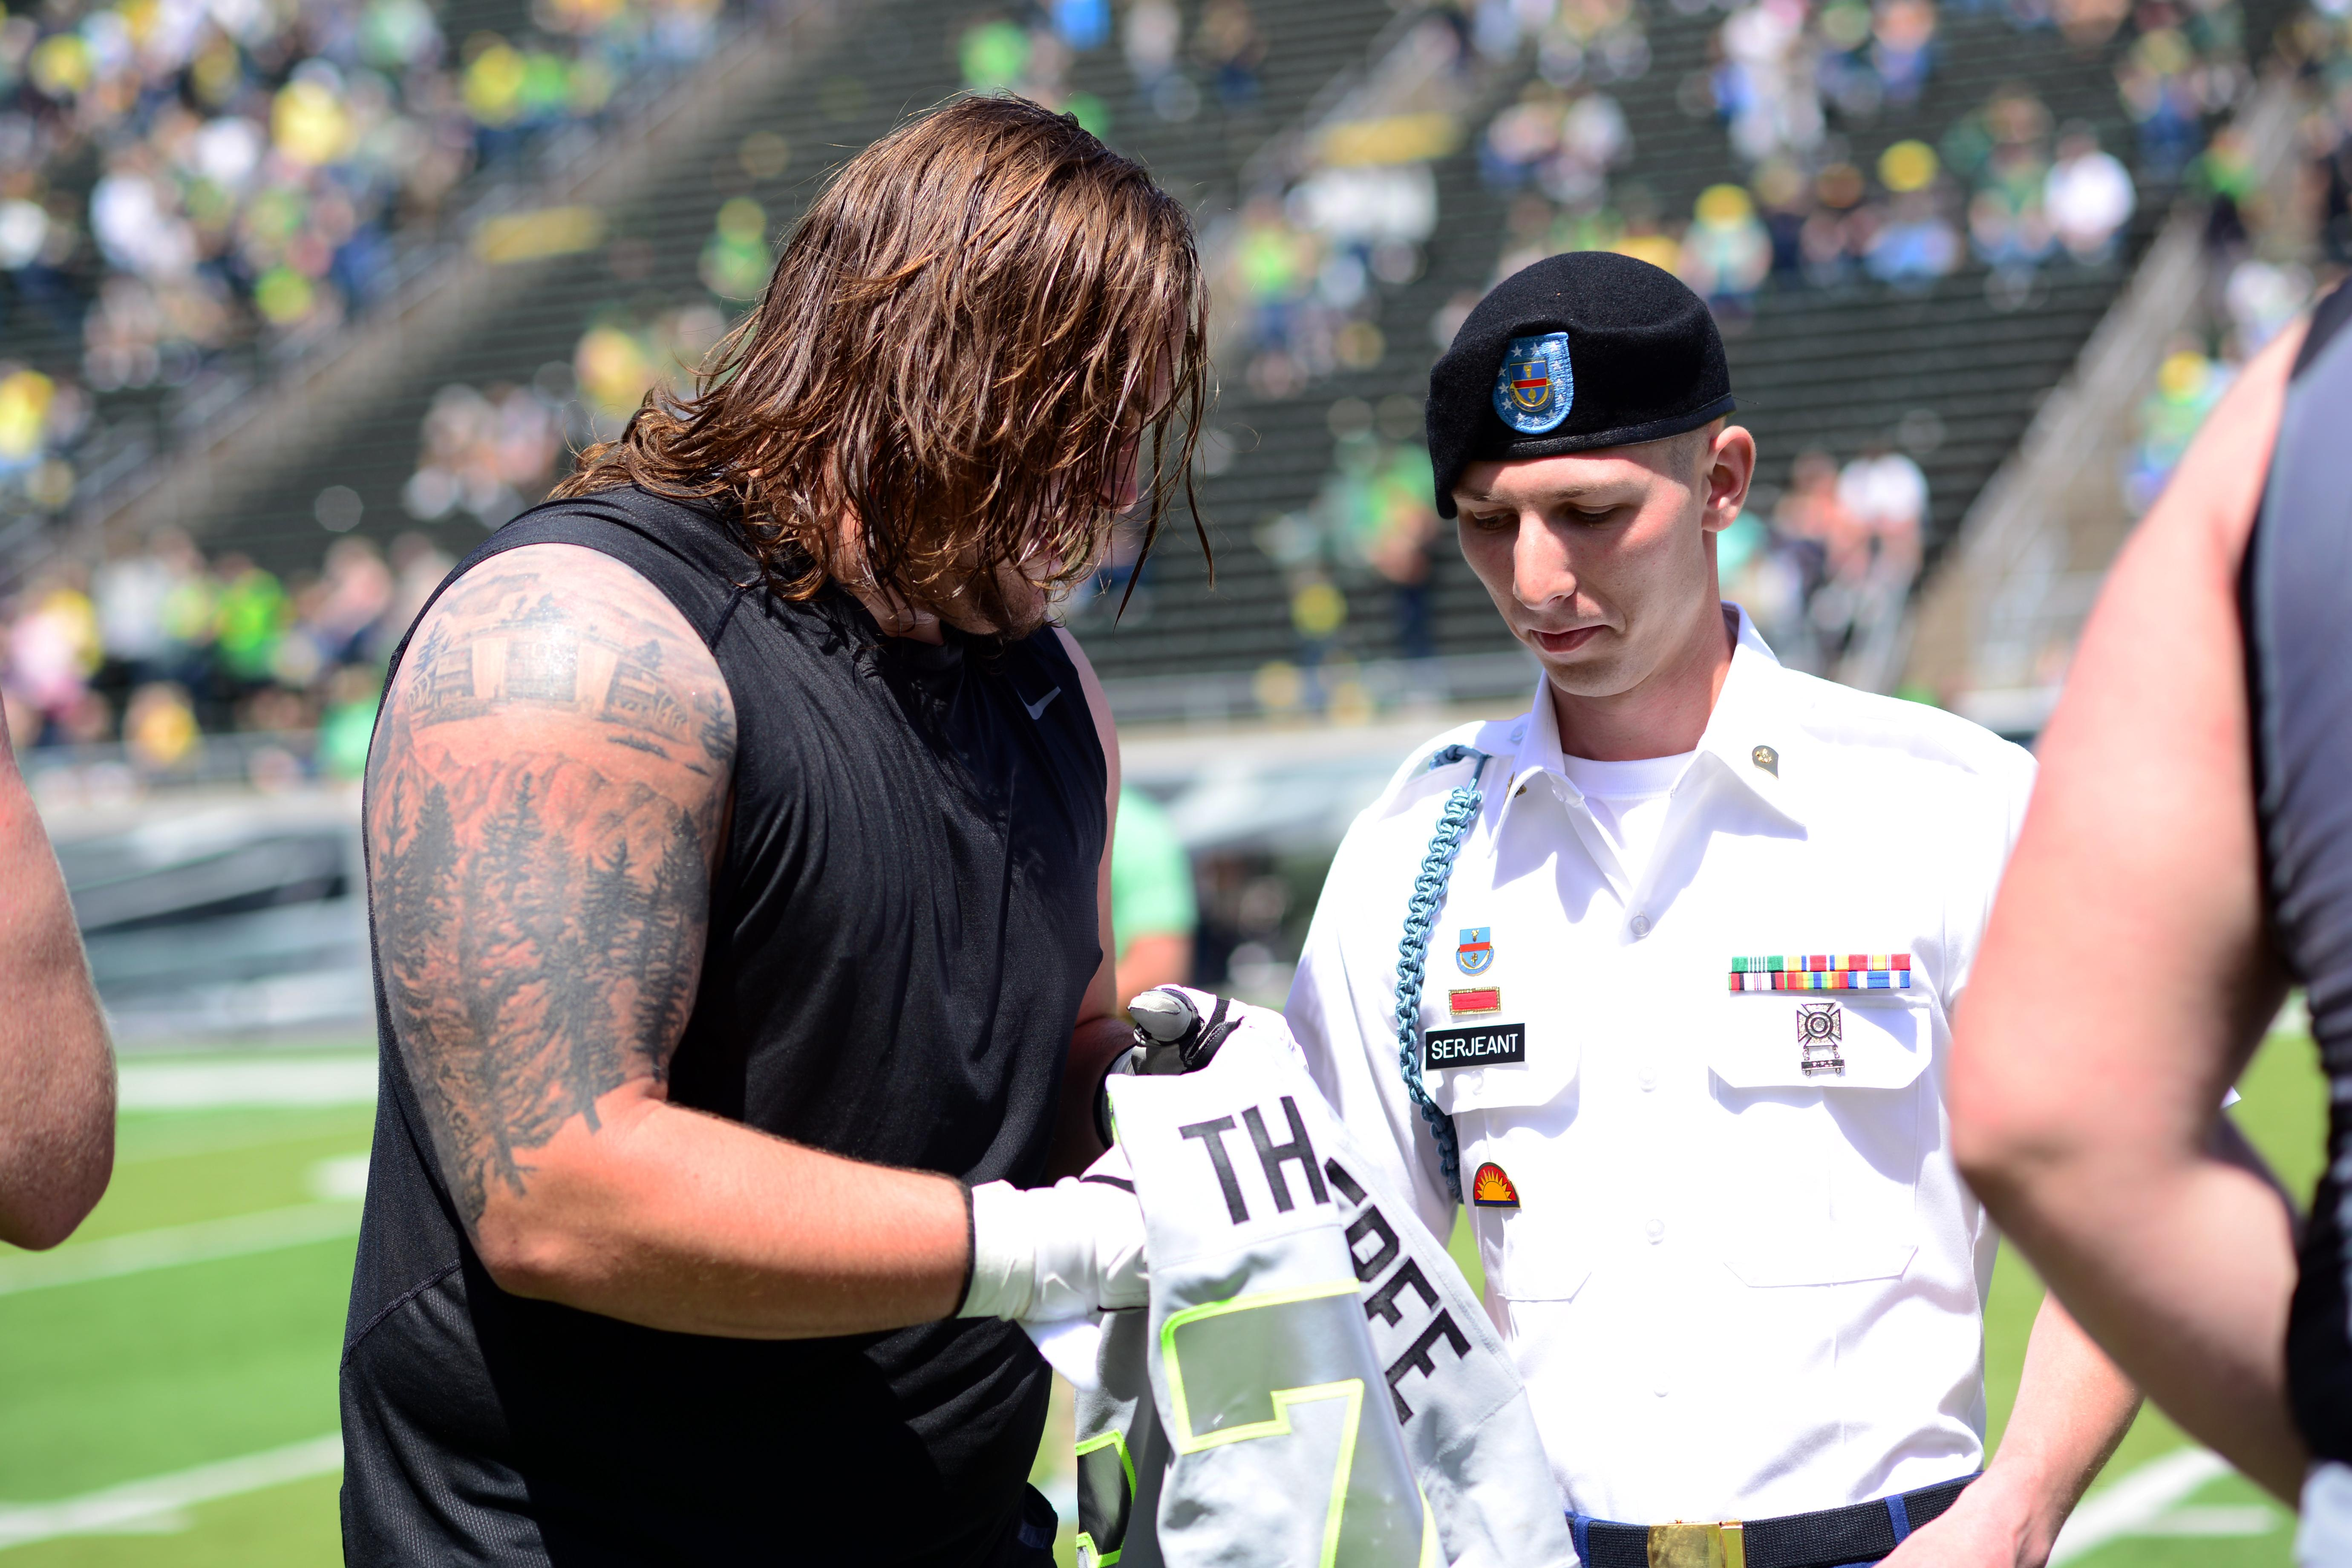 University of Oregon football players give their jerseys to members of the Oregon National Guard, along with Veterans from every branch of service, after the Spring Game, April 29, 2017, at Autzen Stadium in Eugene, Oregon. The players spent time getting to know the Veterans and gave them a tour of their training facilities. (Photo by Sgt. 1st Class April Davis, Oregon Military Department Public Affairs)